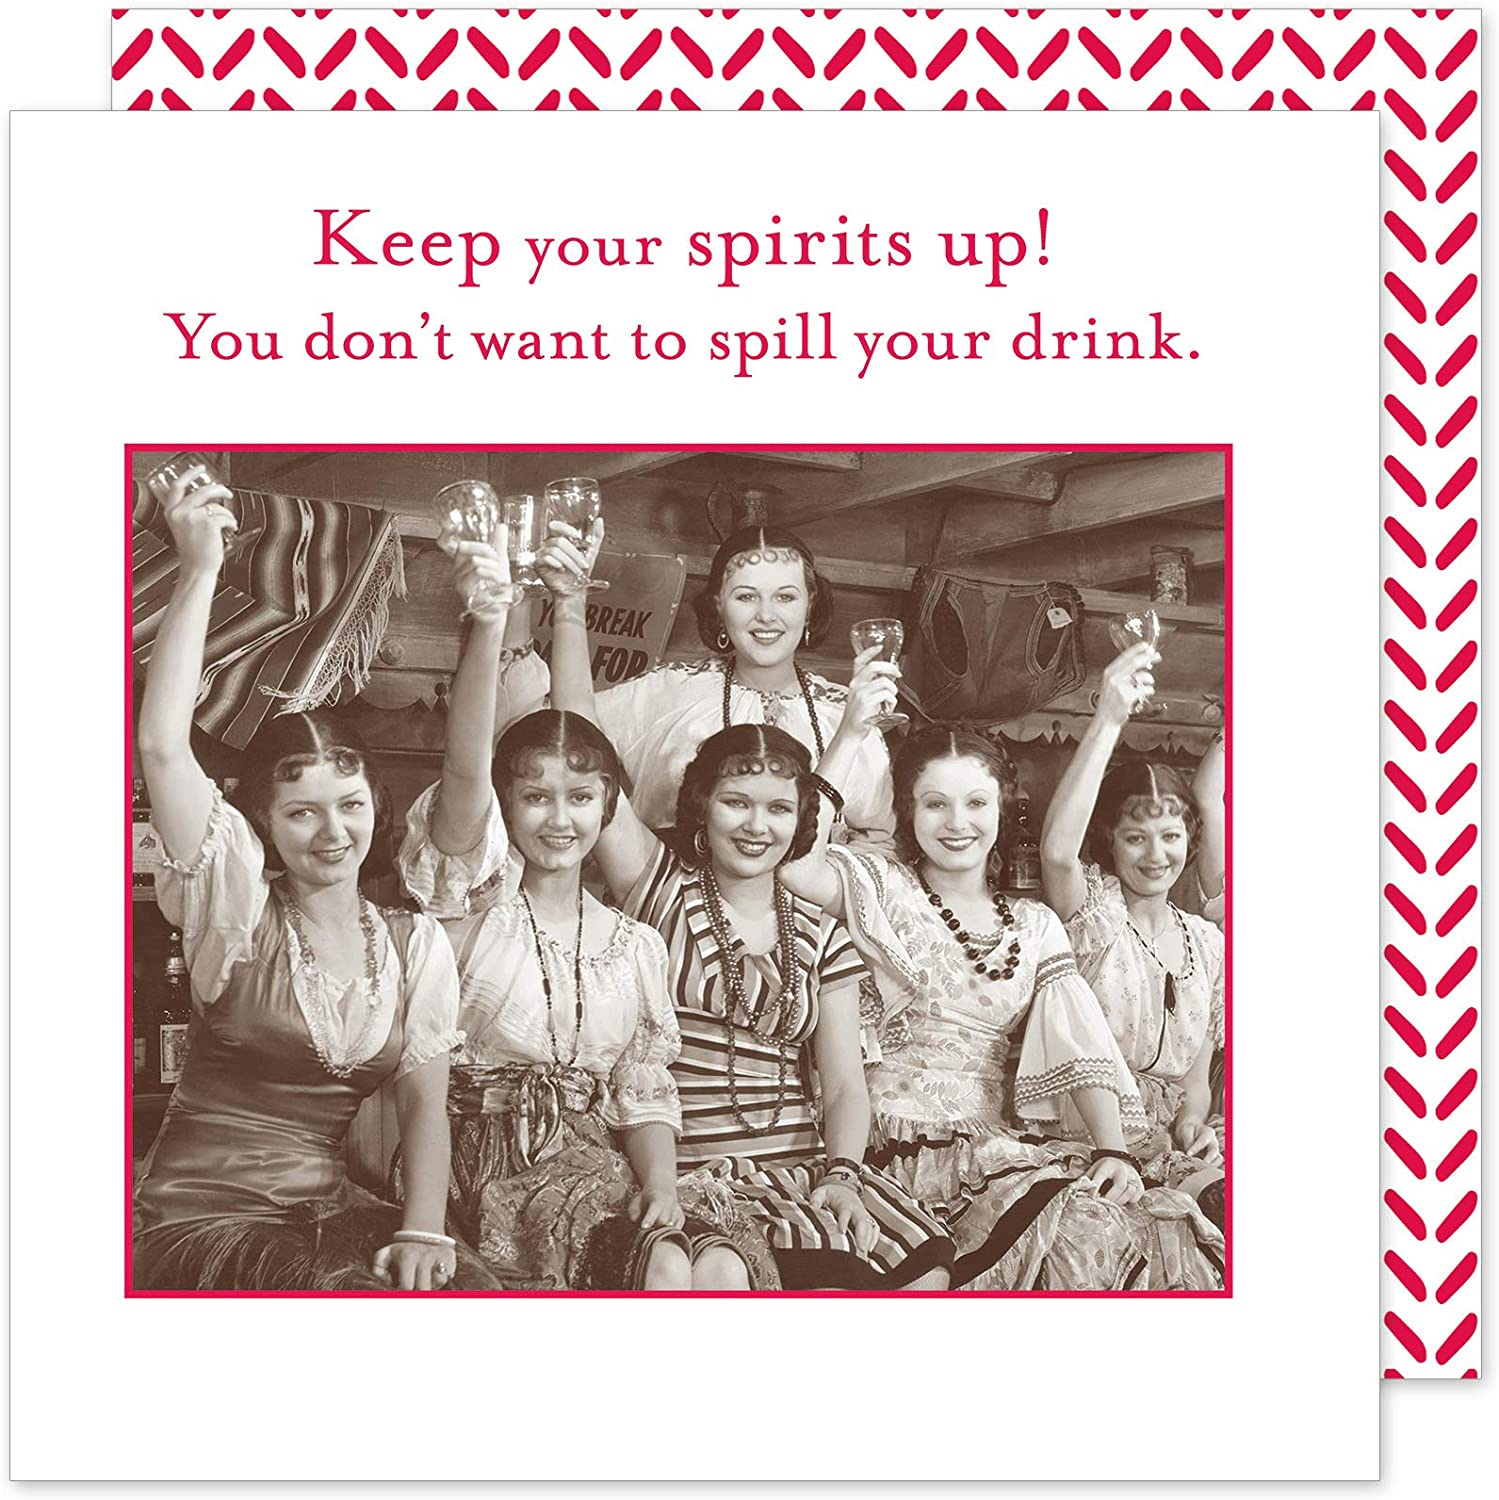 """Bridal Shower Cocktail Napkins Paper Napkins Decorative Disposable Napkins Party Napkins, Happy Hour, Girls Night Out, Keep Your Spirits Up.', 5"""" x 5"""" Pak 40"""